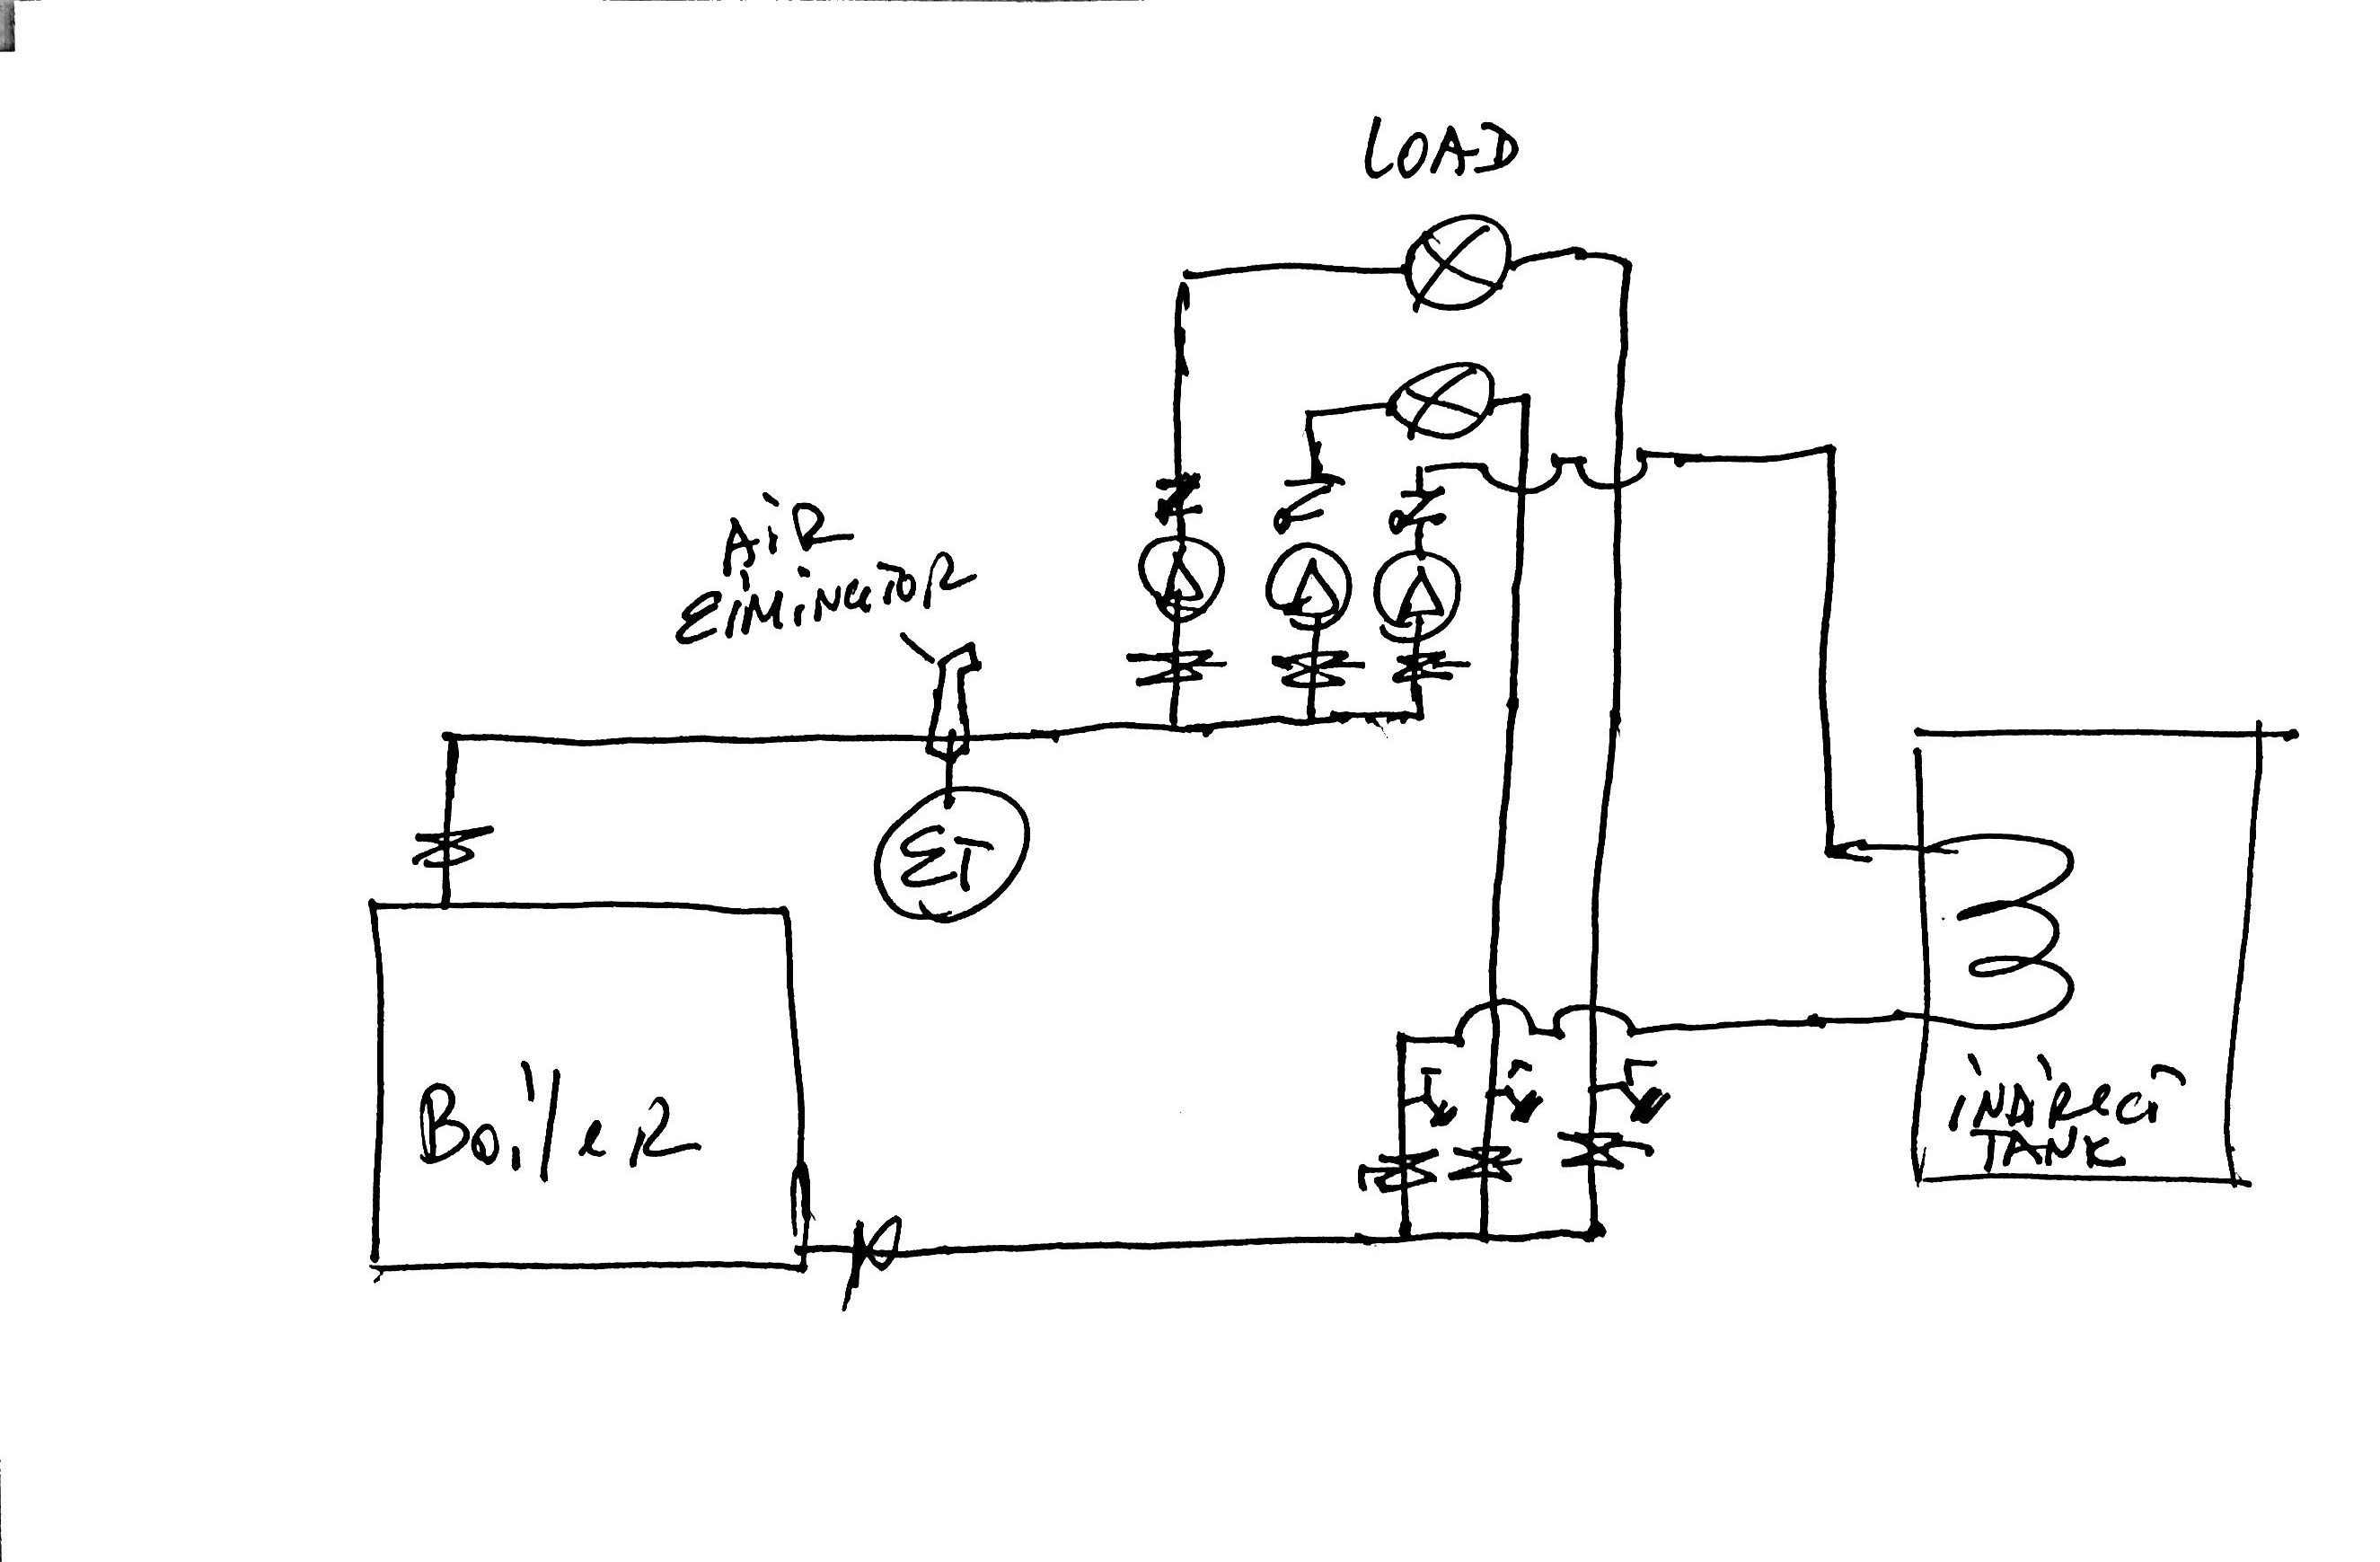 Does This Flow Diagram Work